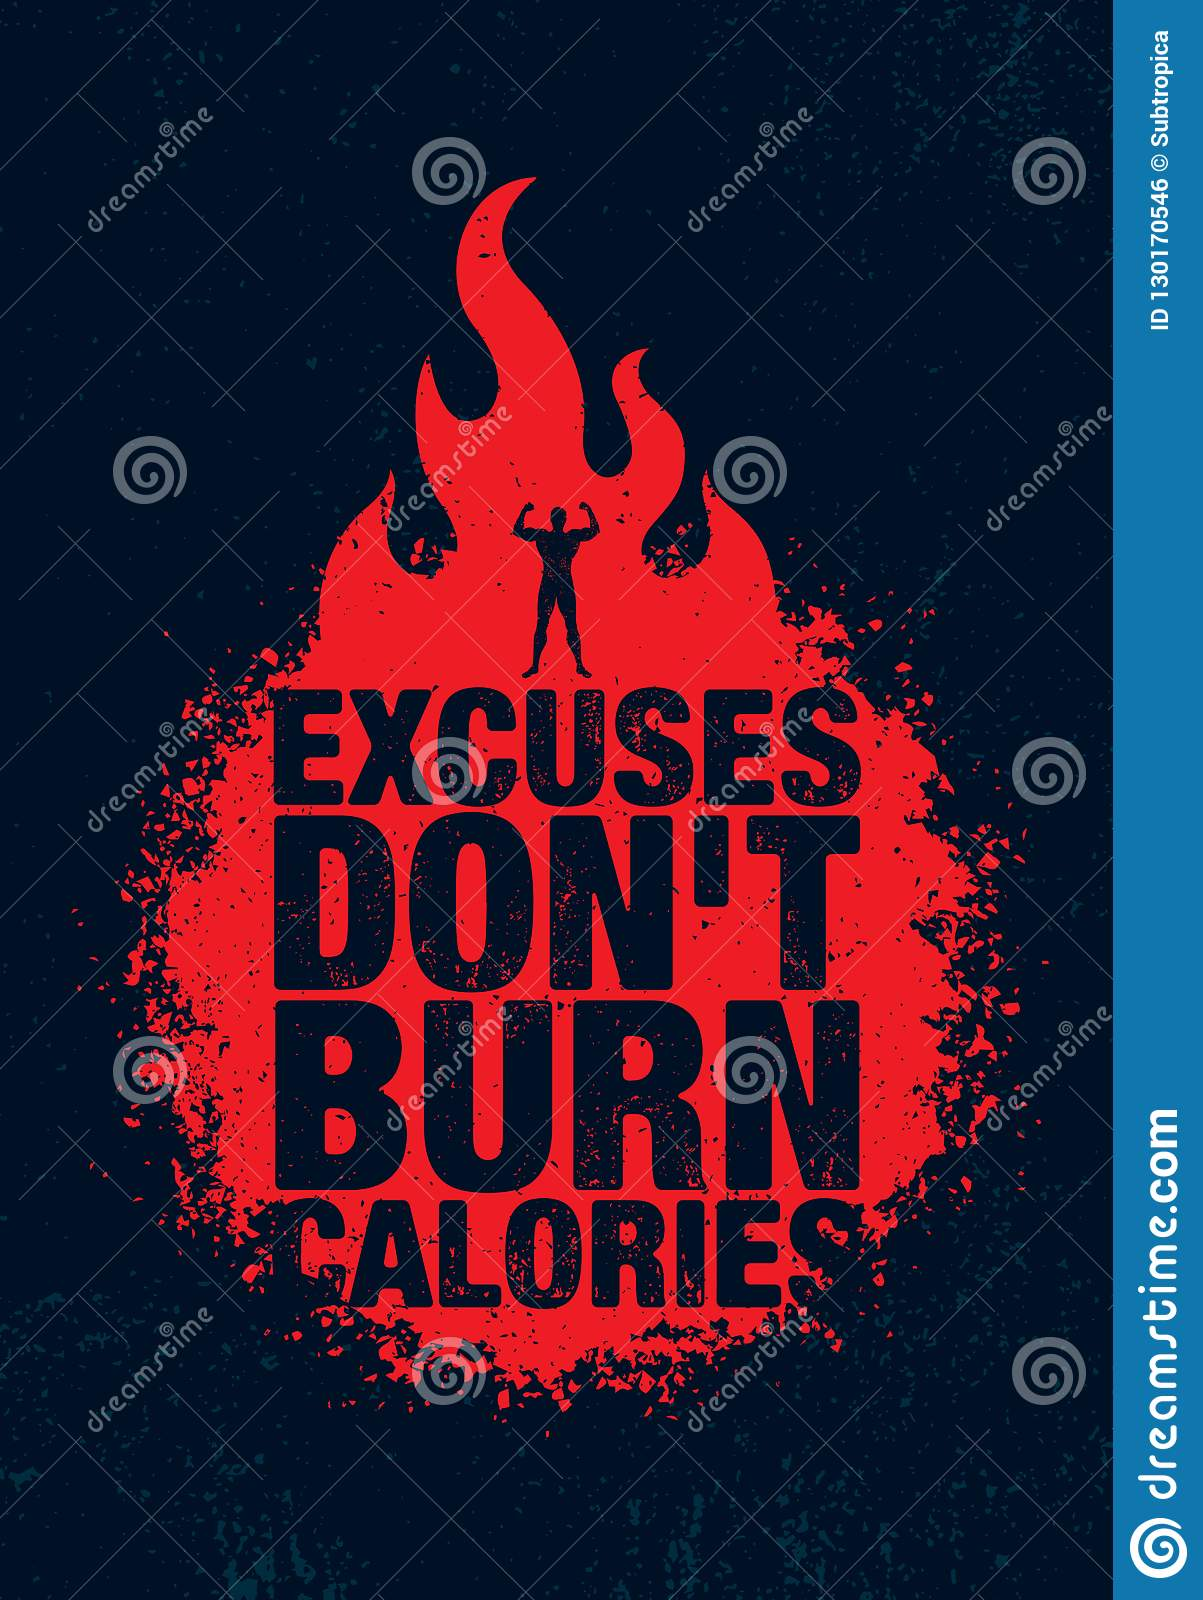 Excuses Don T Burn Calories Inspiring Workout And Fitness Gym Motivation Quote Illustration Sign Sport Vector Stock Vector Illustration Of Motivational Exercise 130170546